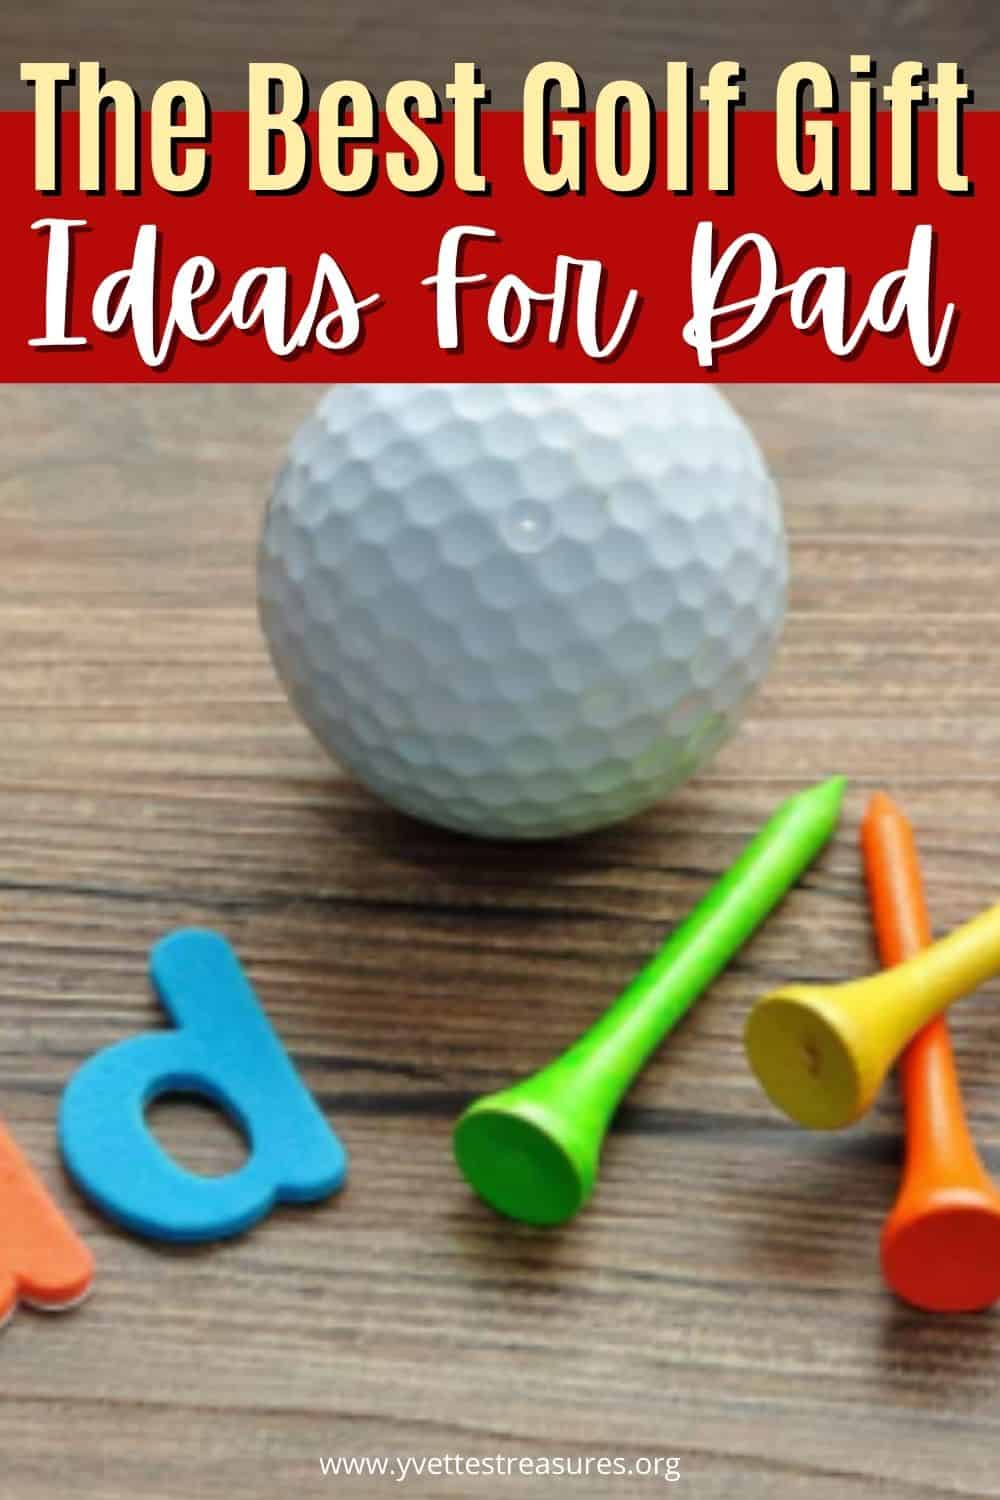 Best Golf Gift Ideas For Dad